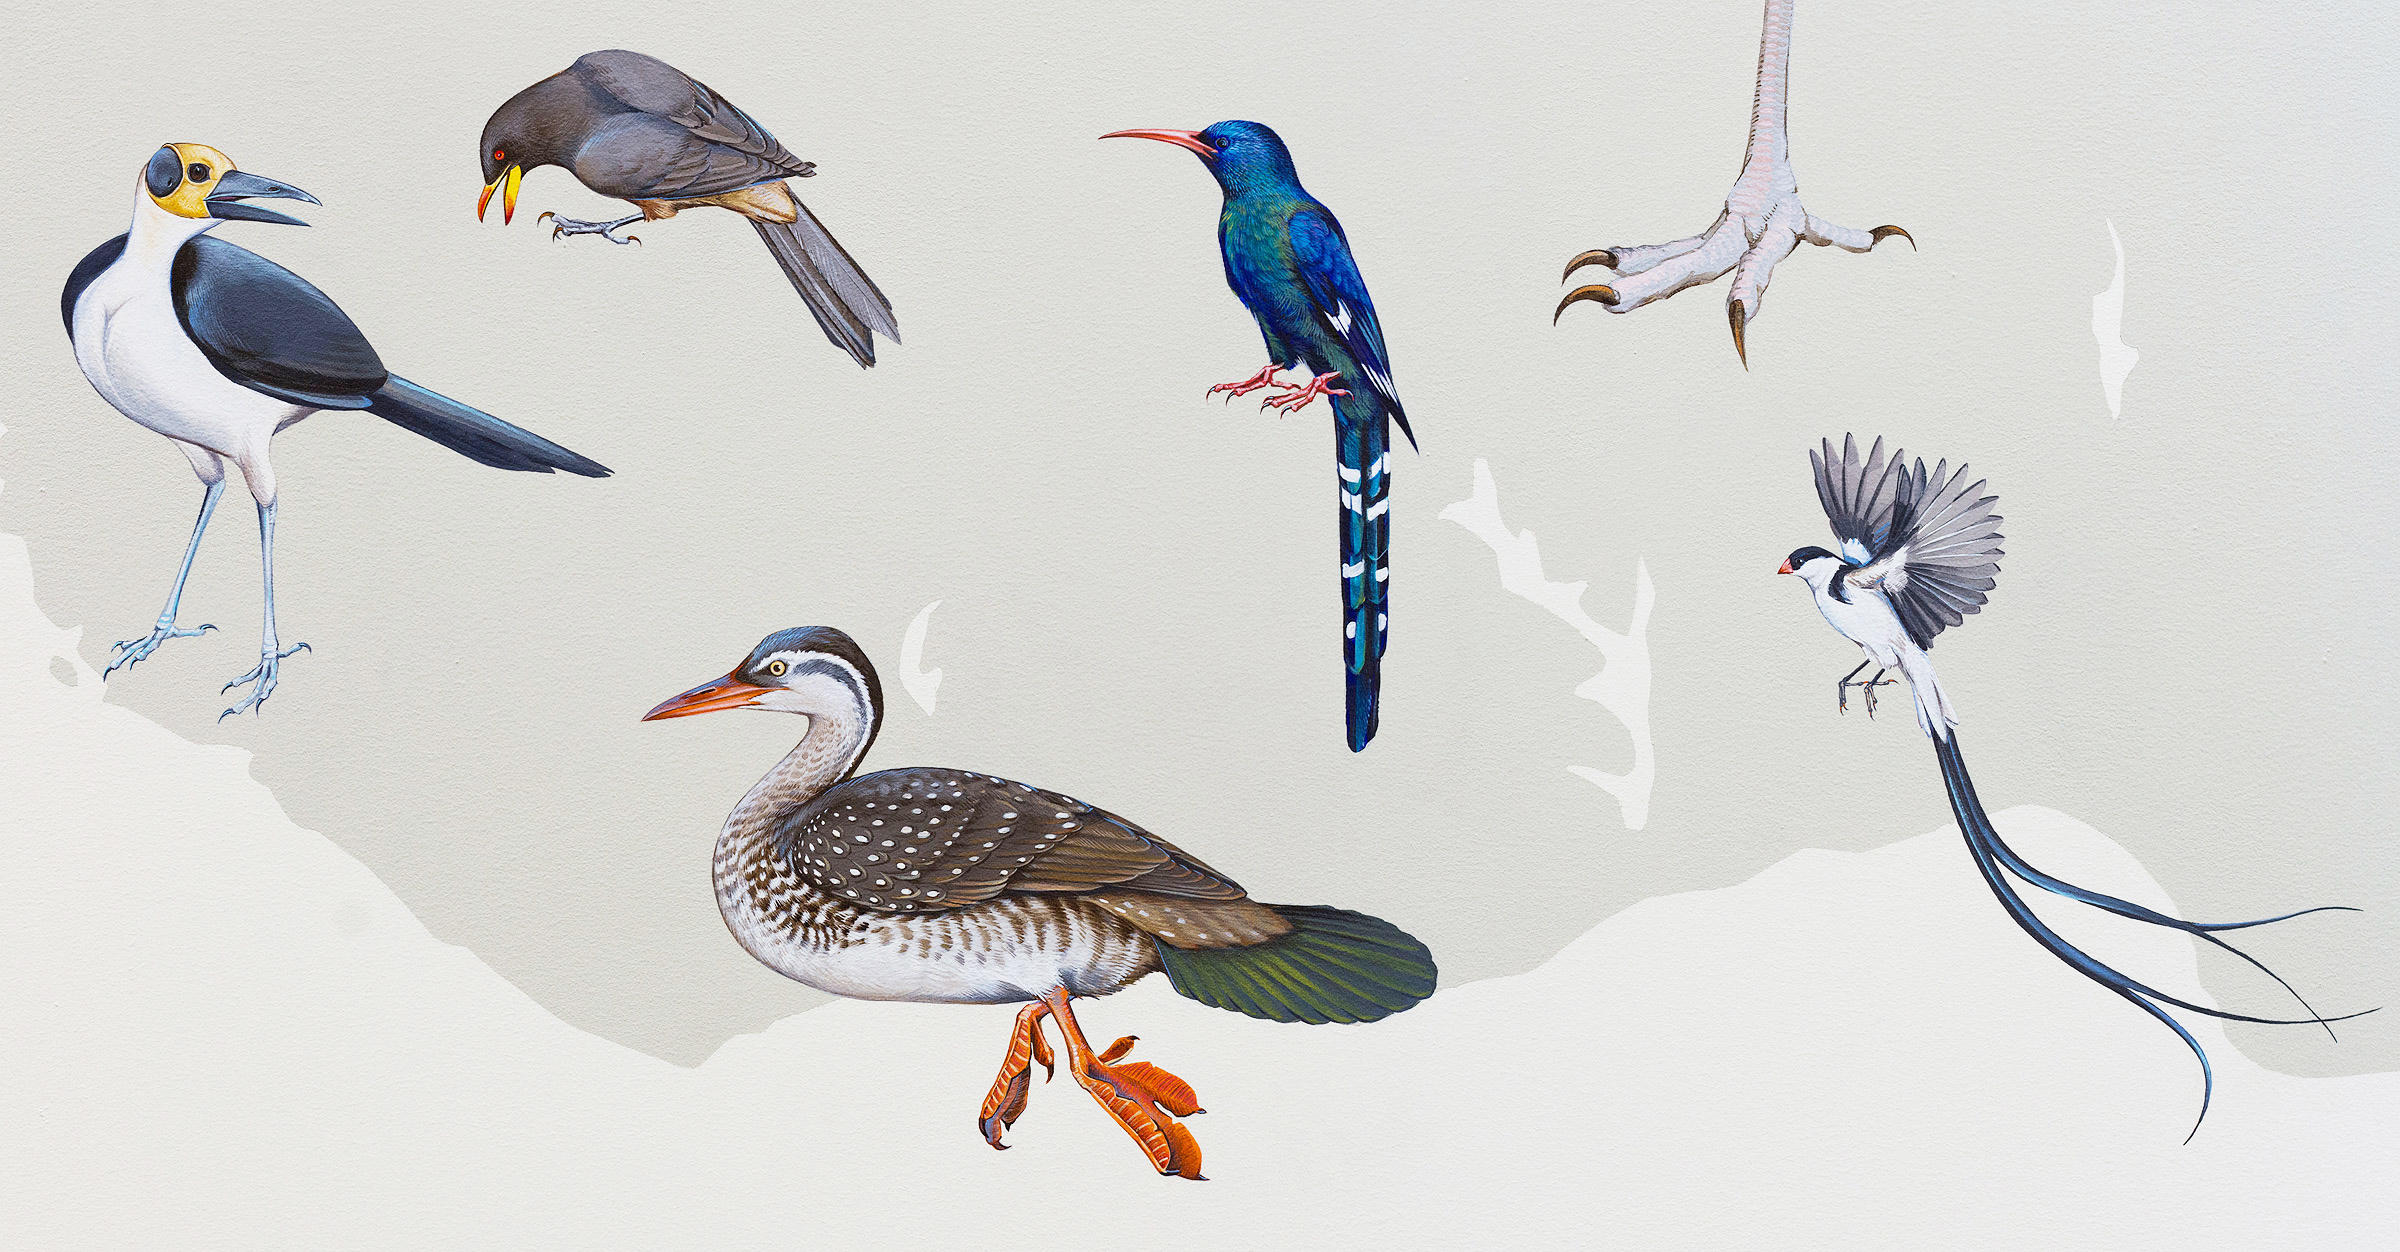 """Clockwise from left to right: White-necked Rockfowl, Yellow-billed Oxpecker, Green Woodhoopoe, foot of Secretary Bird, Pin-tailed Wydah, African Finfoot. Courtesy of <a href=""""http://inkdwell.com/"""">Ink Dwell</a>"""